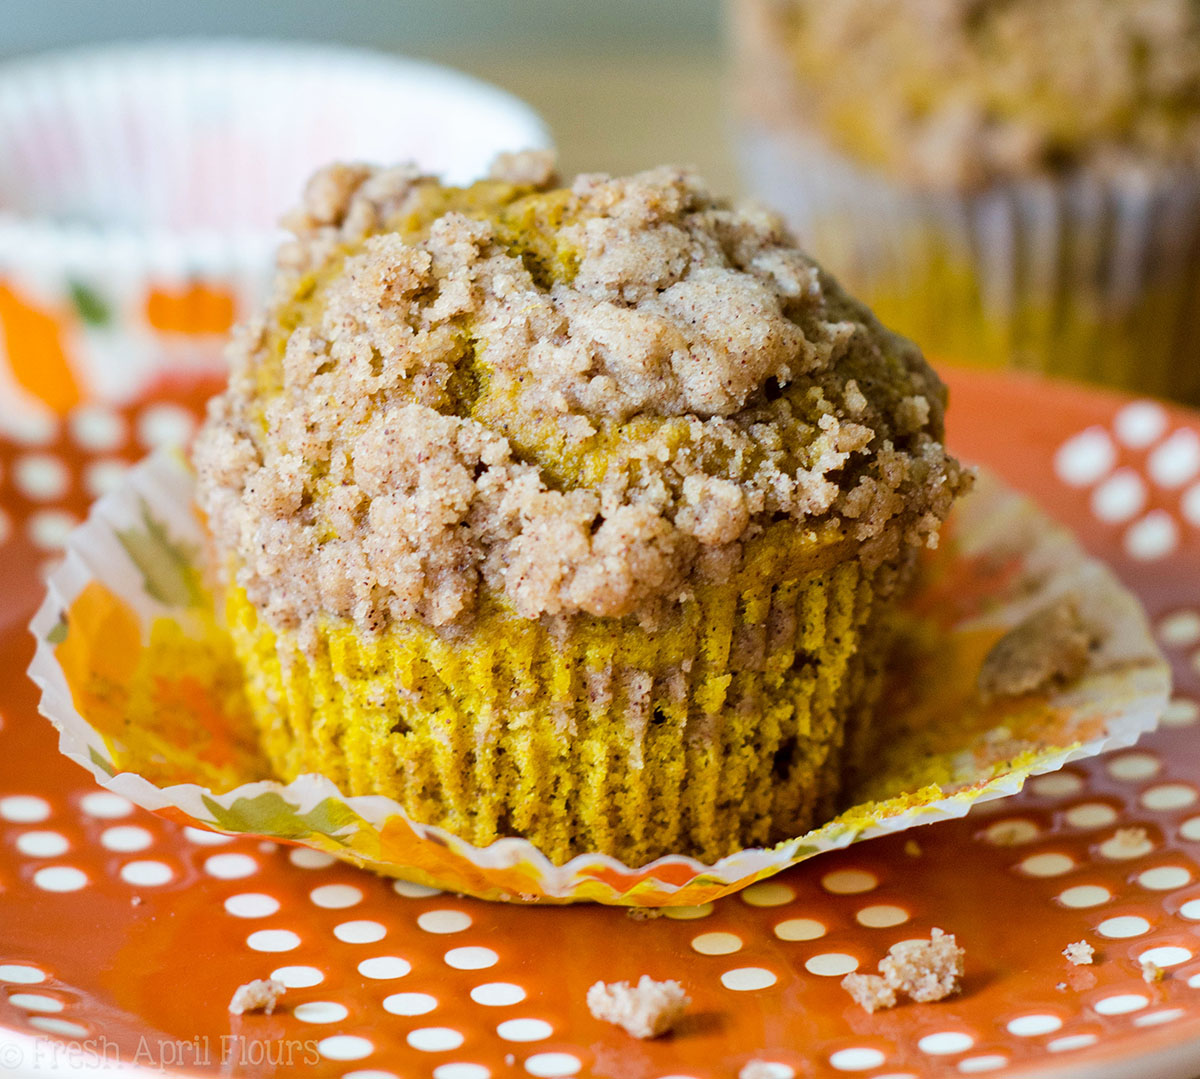 Pumpkin Streusel Muffins: Moist and tender muffins made with real pumpkin and all the warm flavors of fall, topped with an irresistible pumpkin spice streusel.